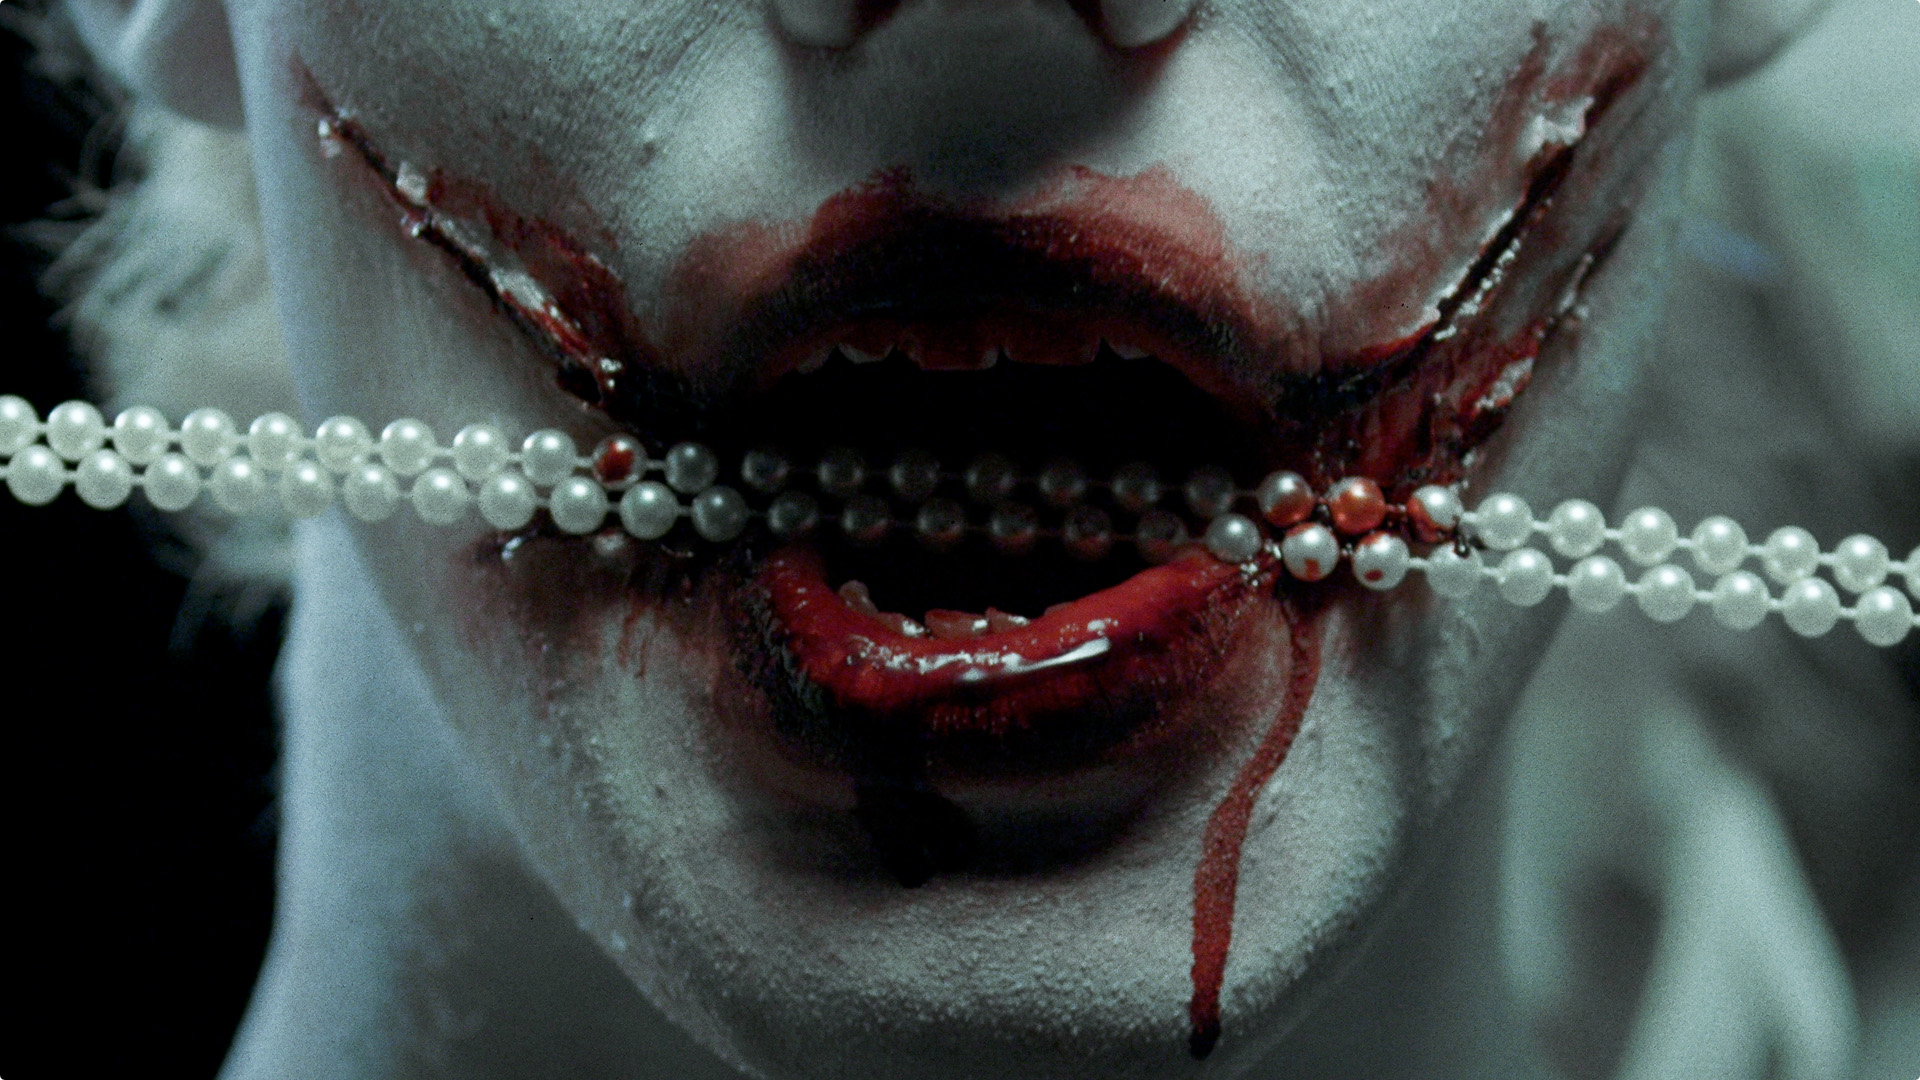 phagia_mouth_extreme_cl_pearls.jpg